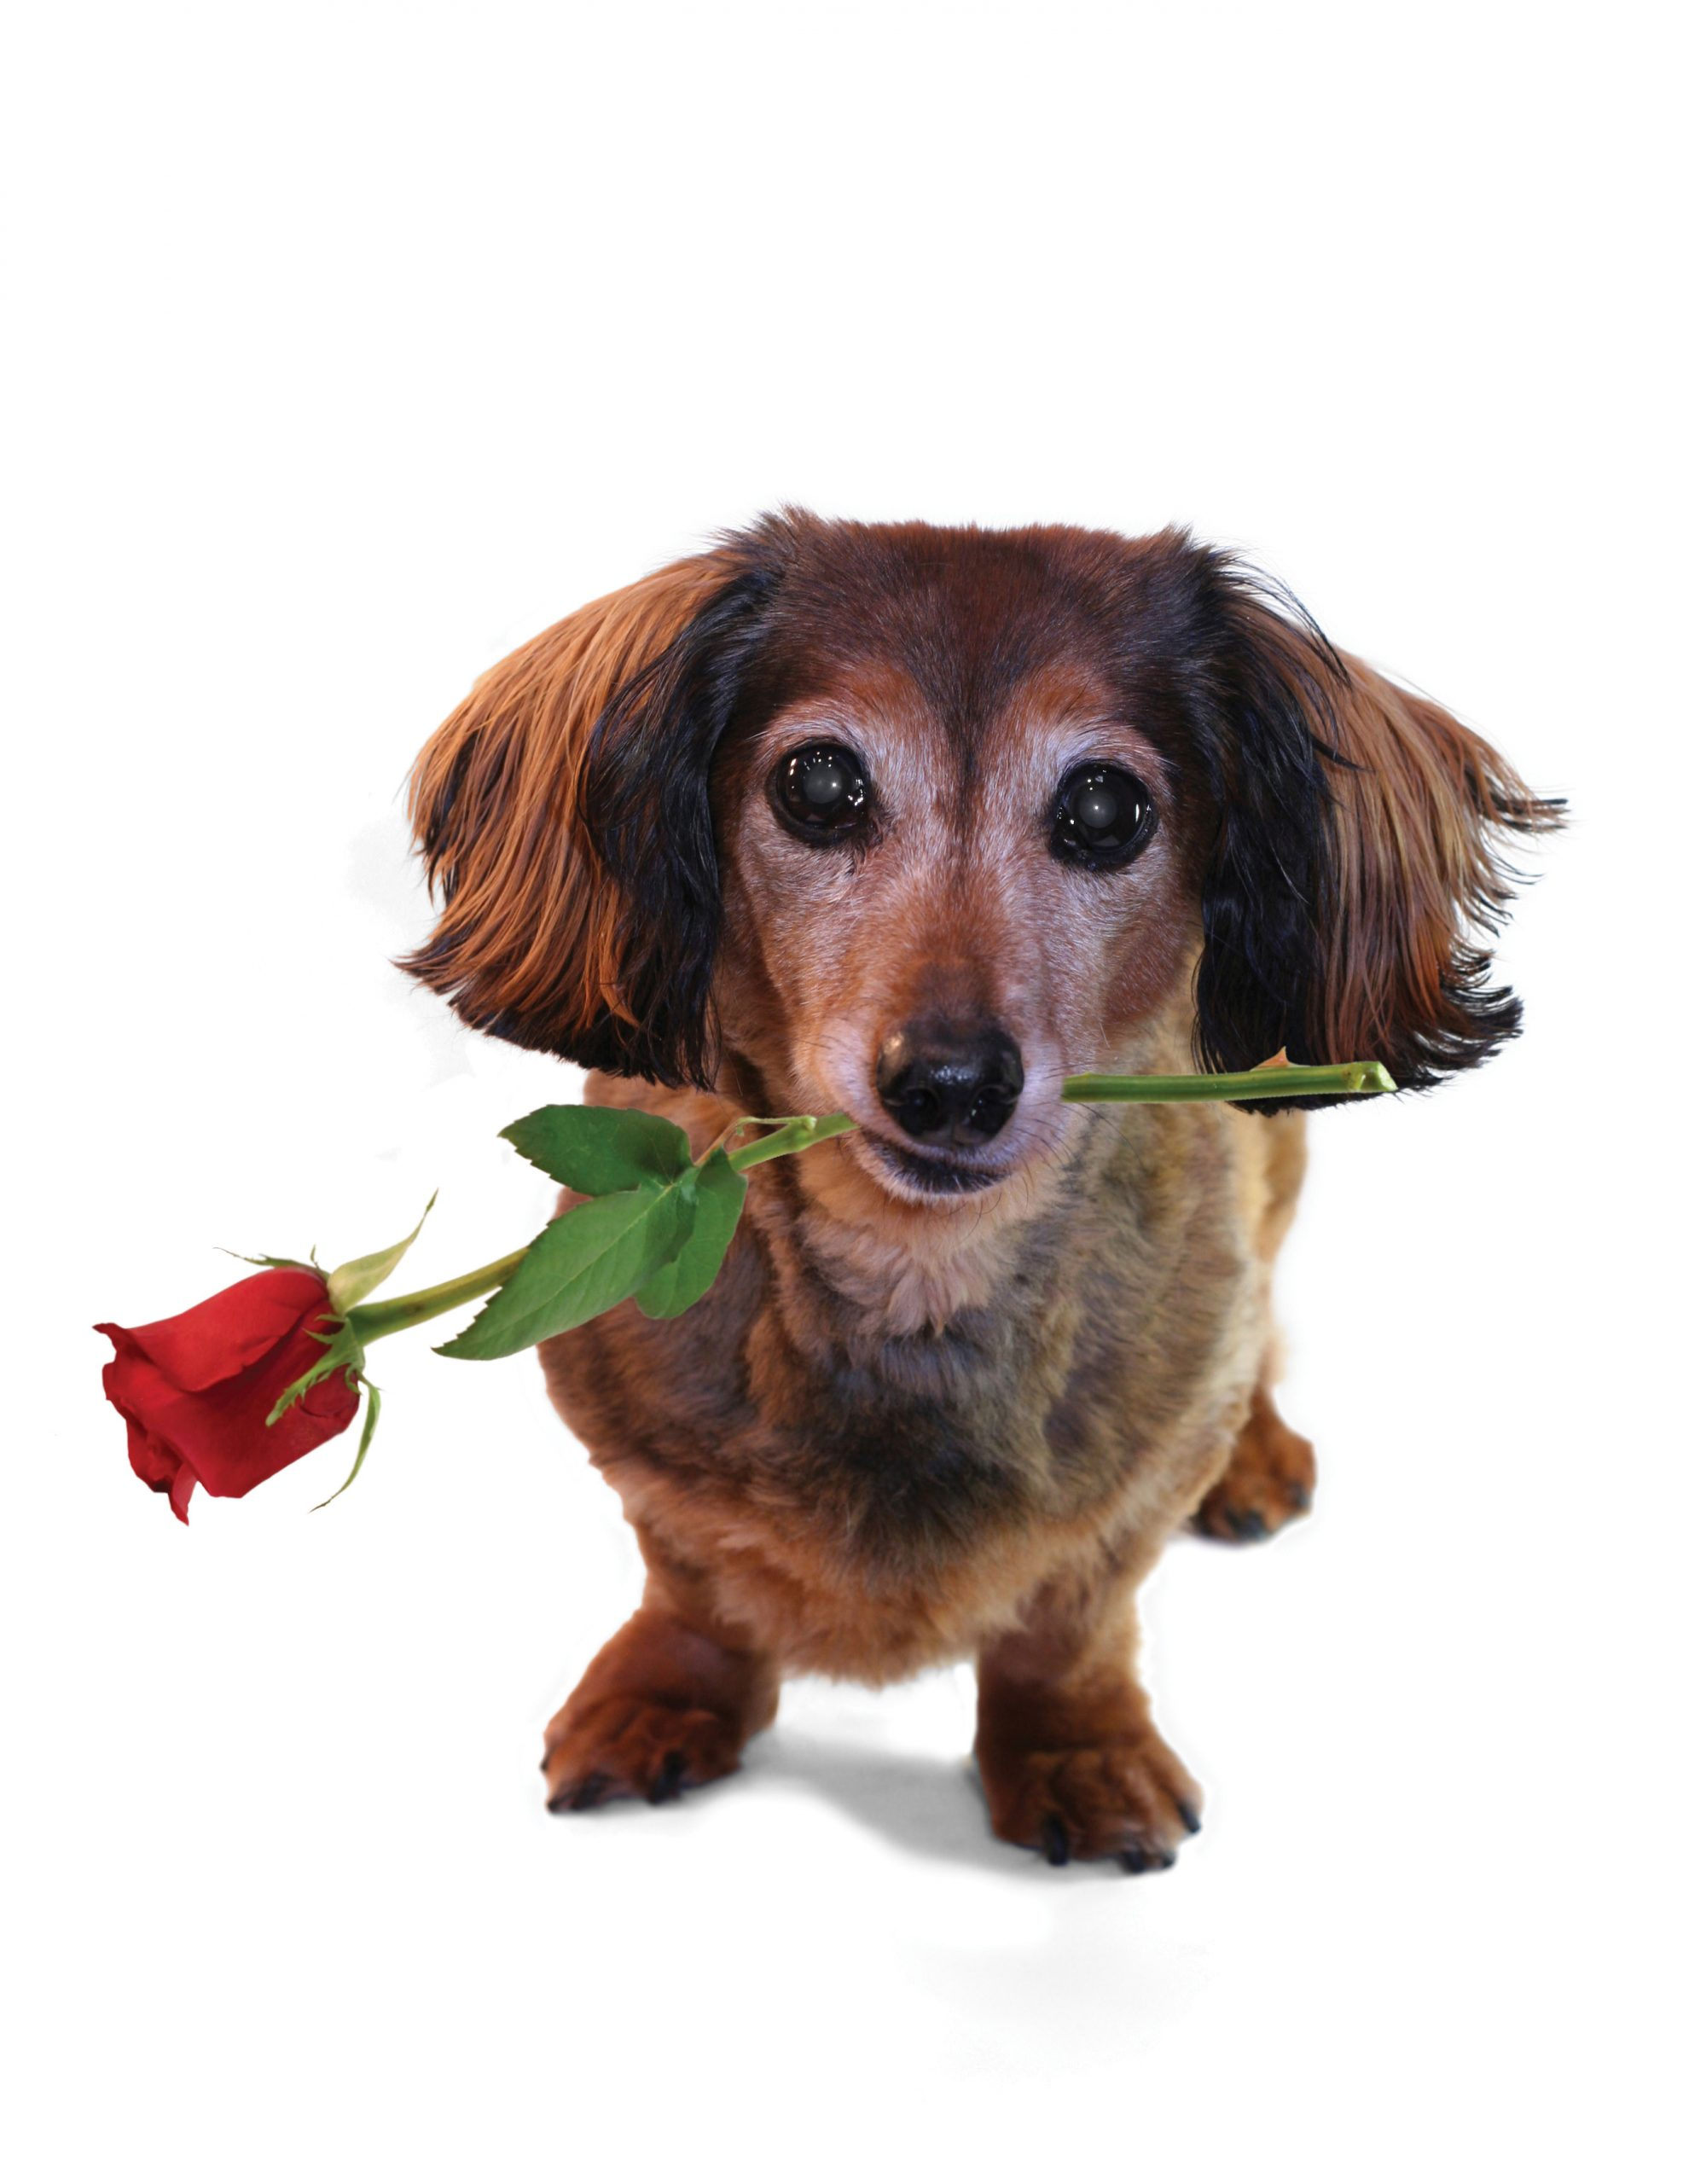 Happy Valentines Day From Houston PetTalk!